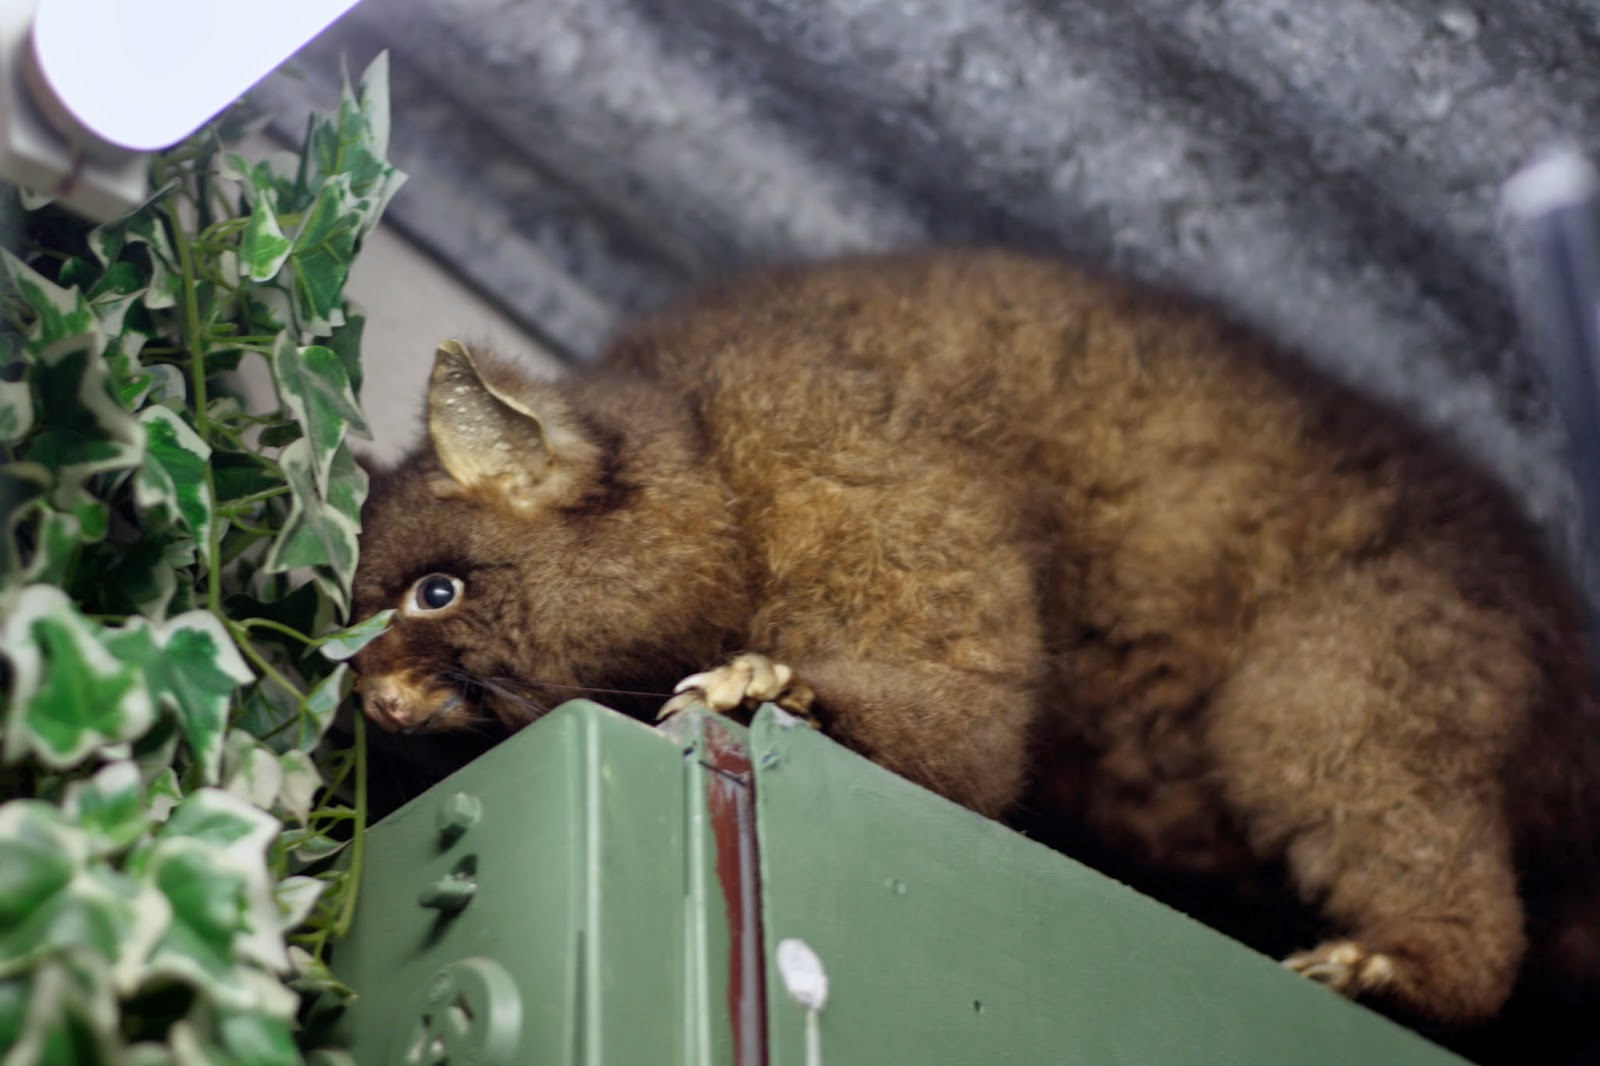 A taxidermied possum tries to hide on top of a switch box.